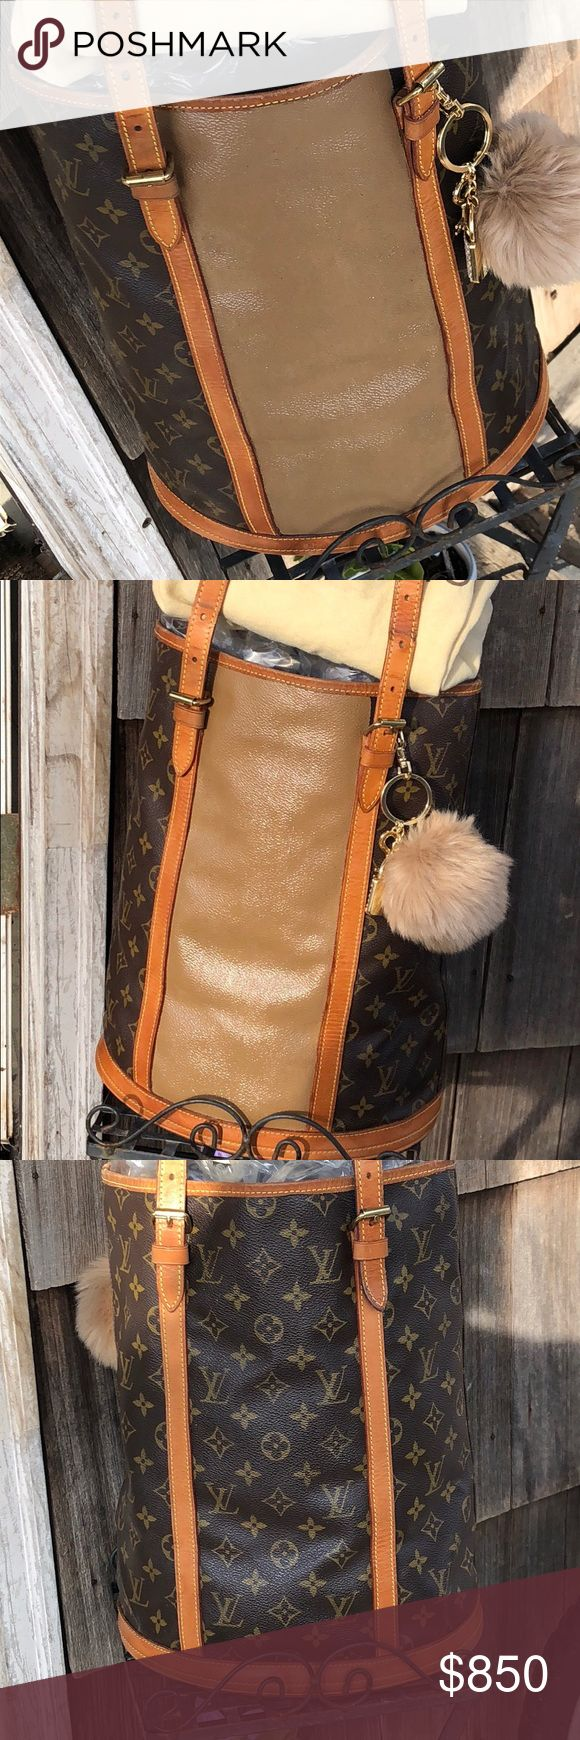 """💖LOUIS VUITTON GM BUCKET BAG 💖 A Beauty 💖!! Beautiful Authentic Louis Vuitton brown monogram Large """"GM"""" bucket Shoulder bag ,  repurposed ! As you see in pics Great preloved condition for its age, but still has lots of life left. Definitely well loved & used ! 💖 Date code AR0997. Oldie but beauty 💖! Gorgeous patinaed straps & trim , you can wear either side . Chain & hook in there to hook a wallet or coin purse. Original dust bag included , Inside normal wear but no peeling. Any Q's…"""